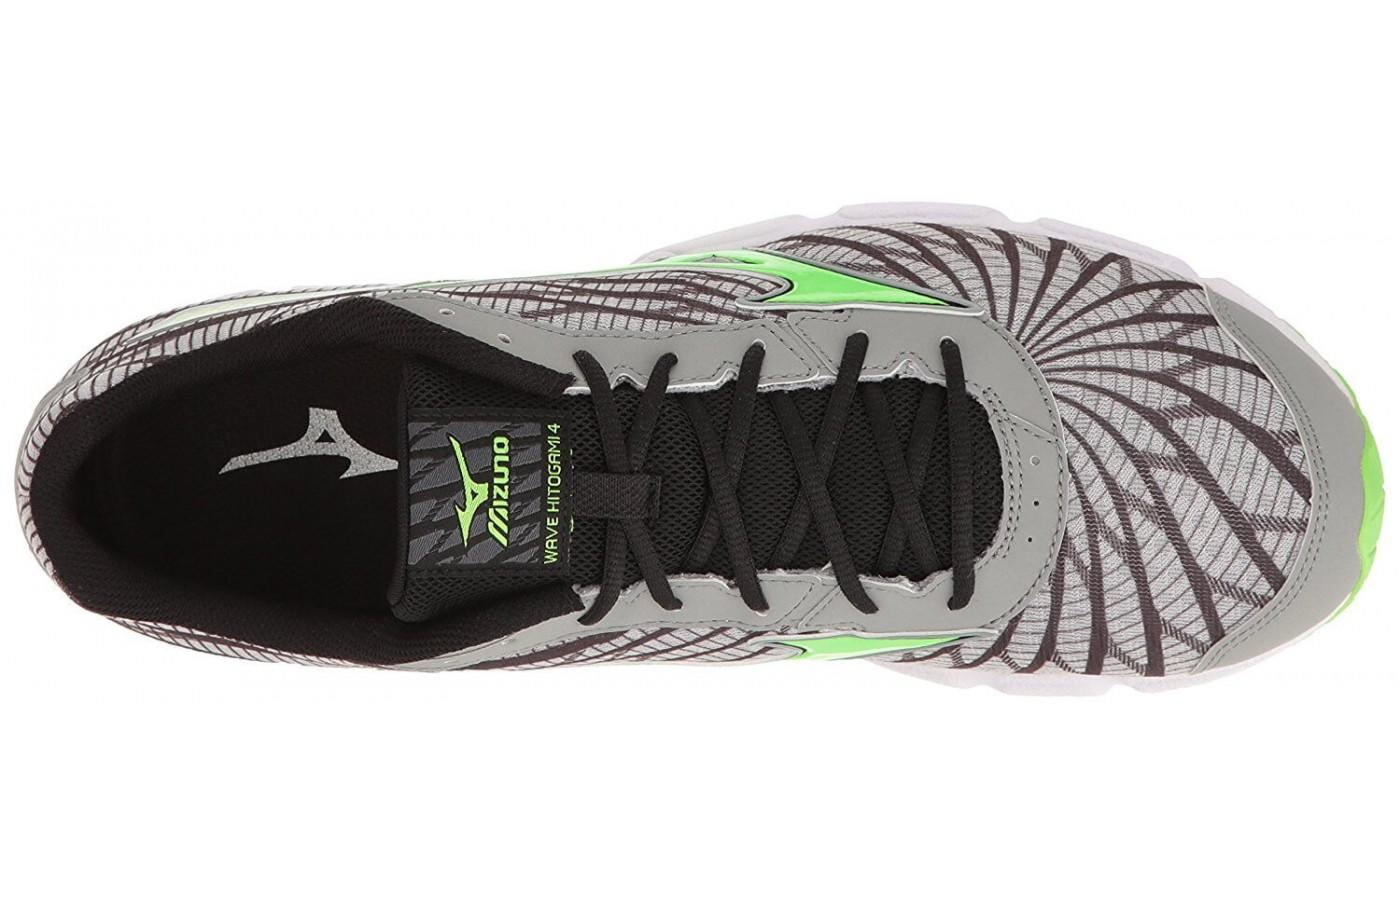 the upper of the Mizuno Wave Hitogami 4 is constructed of breathable AIRmesh